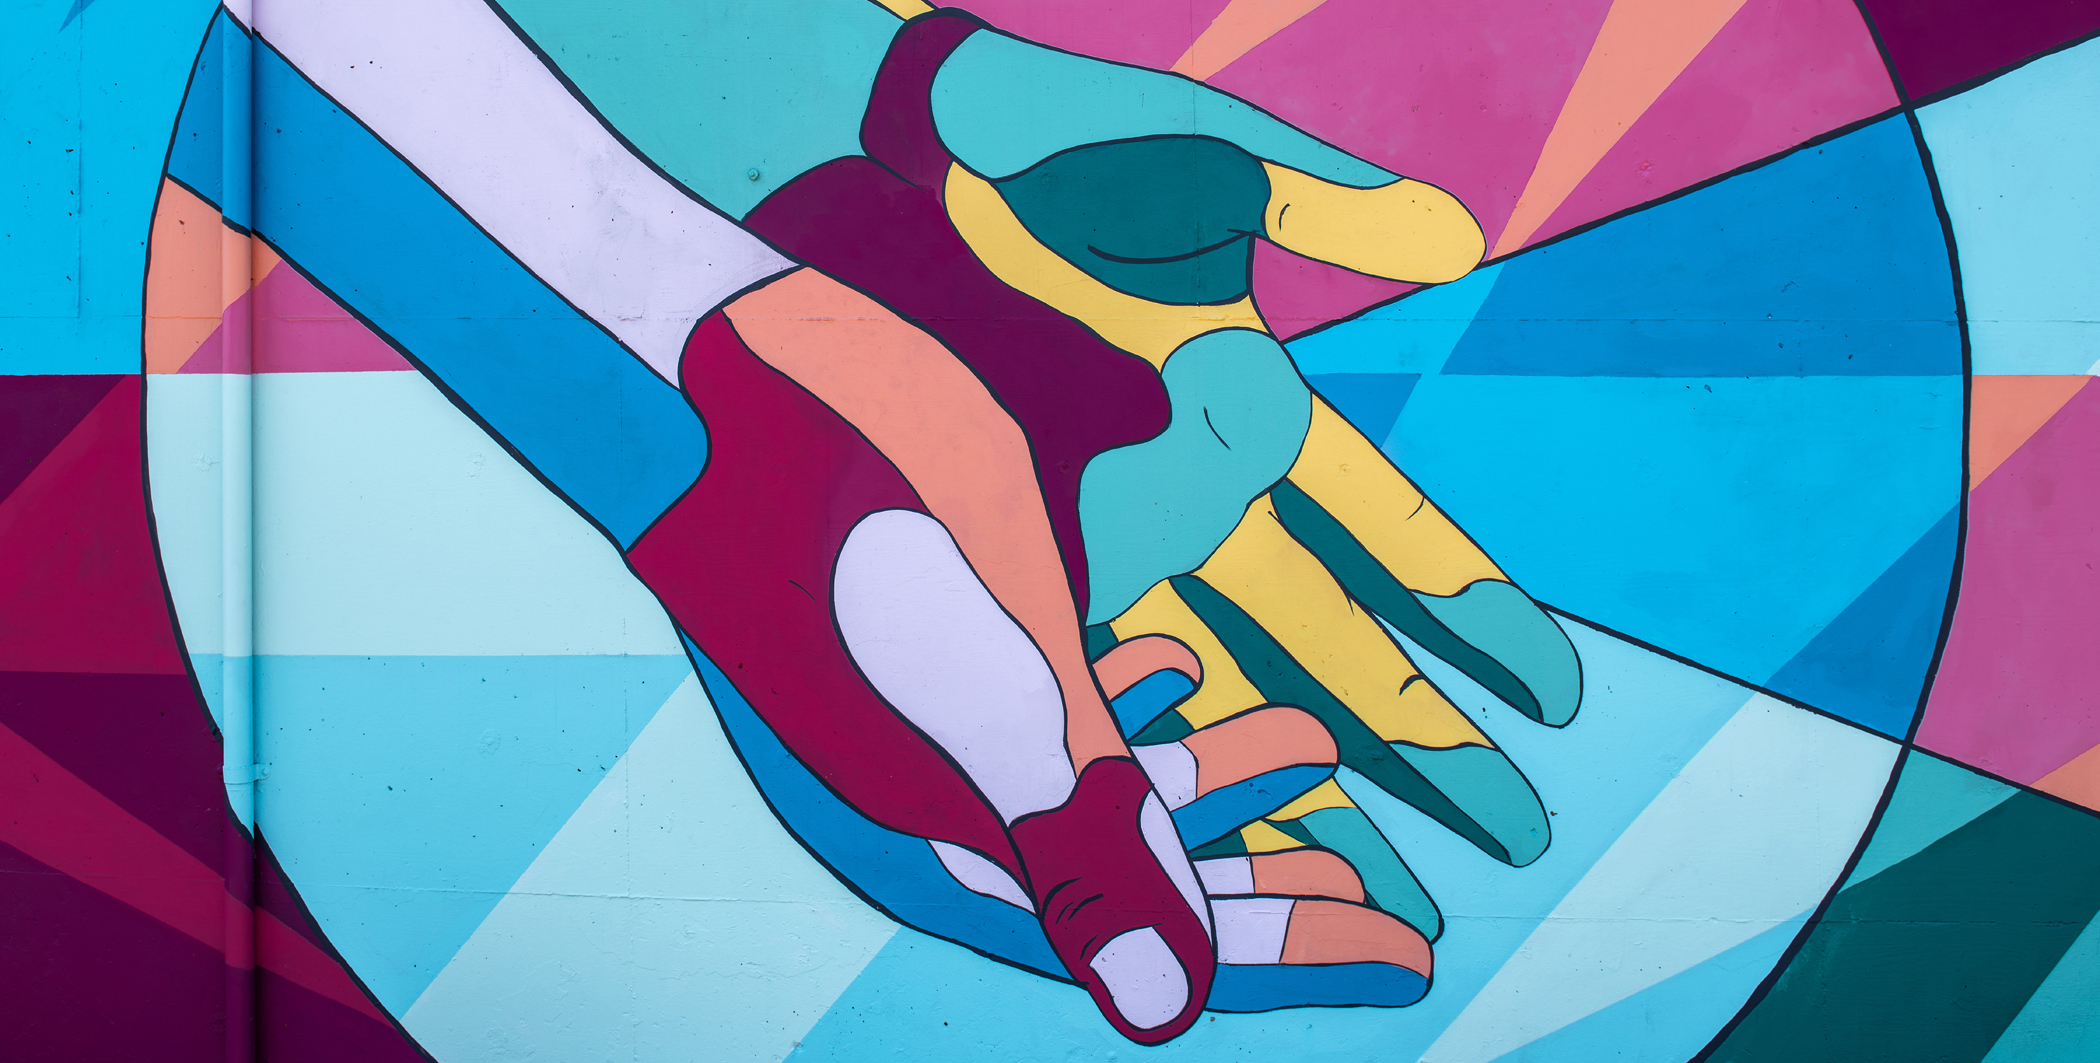 Image by Tim Mossholder: a mural showing some brightly coloured hands